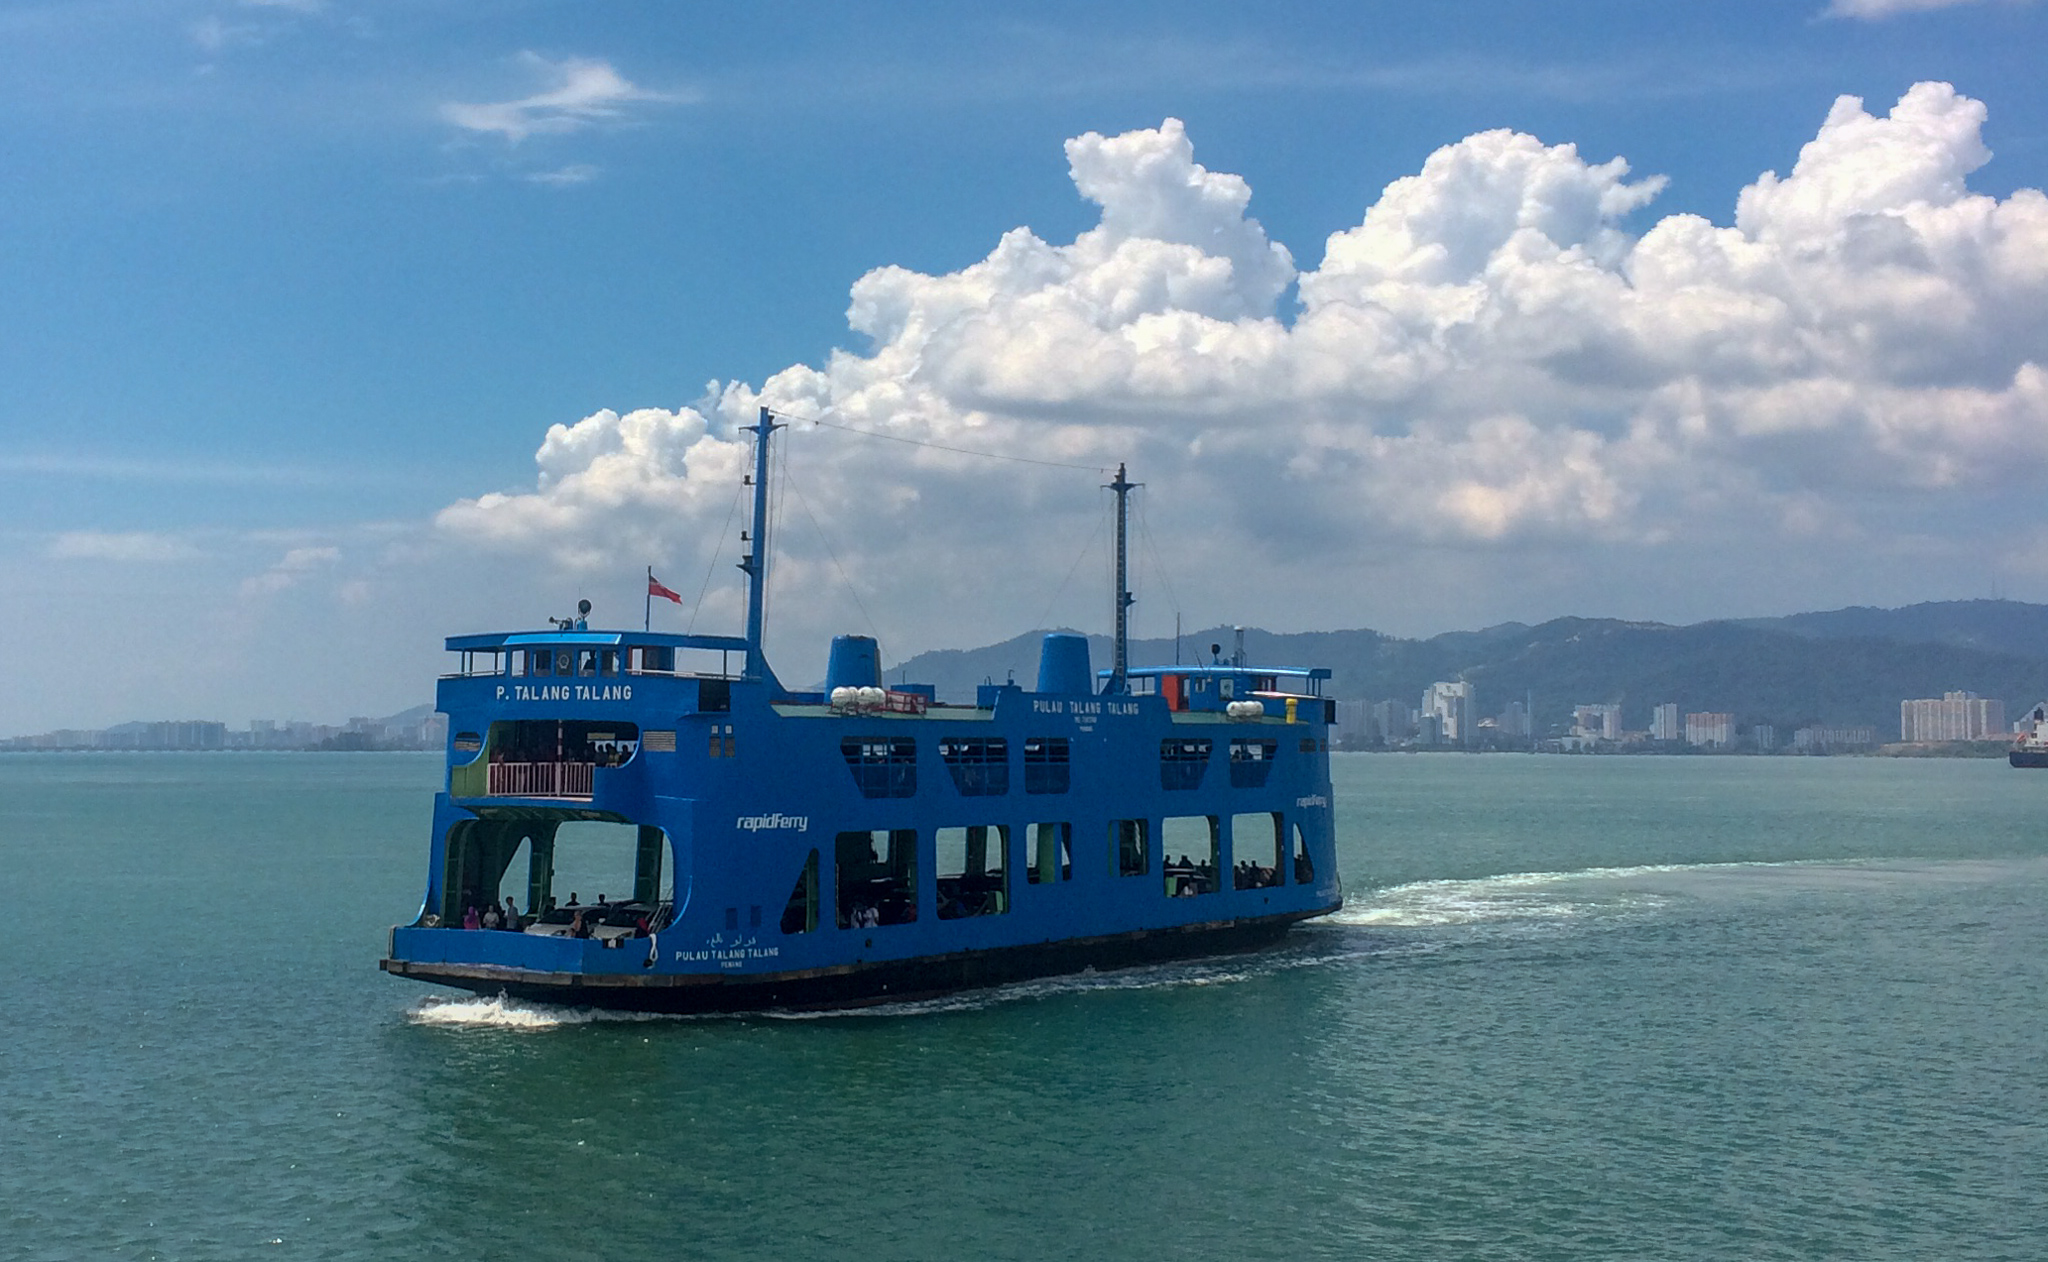 It all started with a beautiful ferry ride to the island of Penang, Malaysia. But, things didn't go as planned.